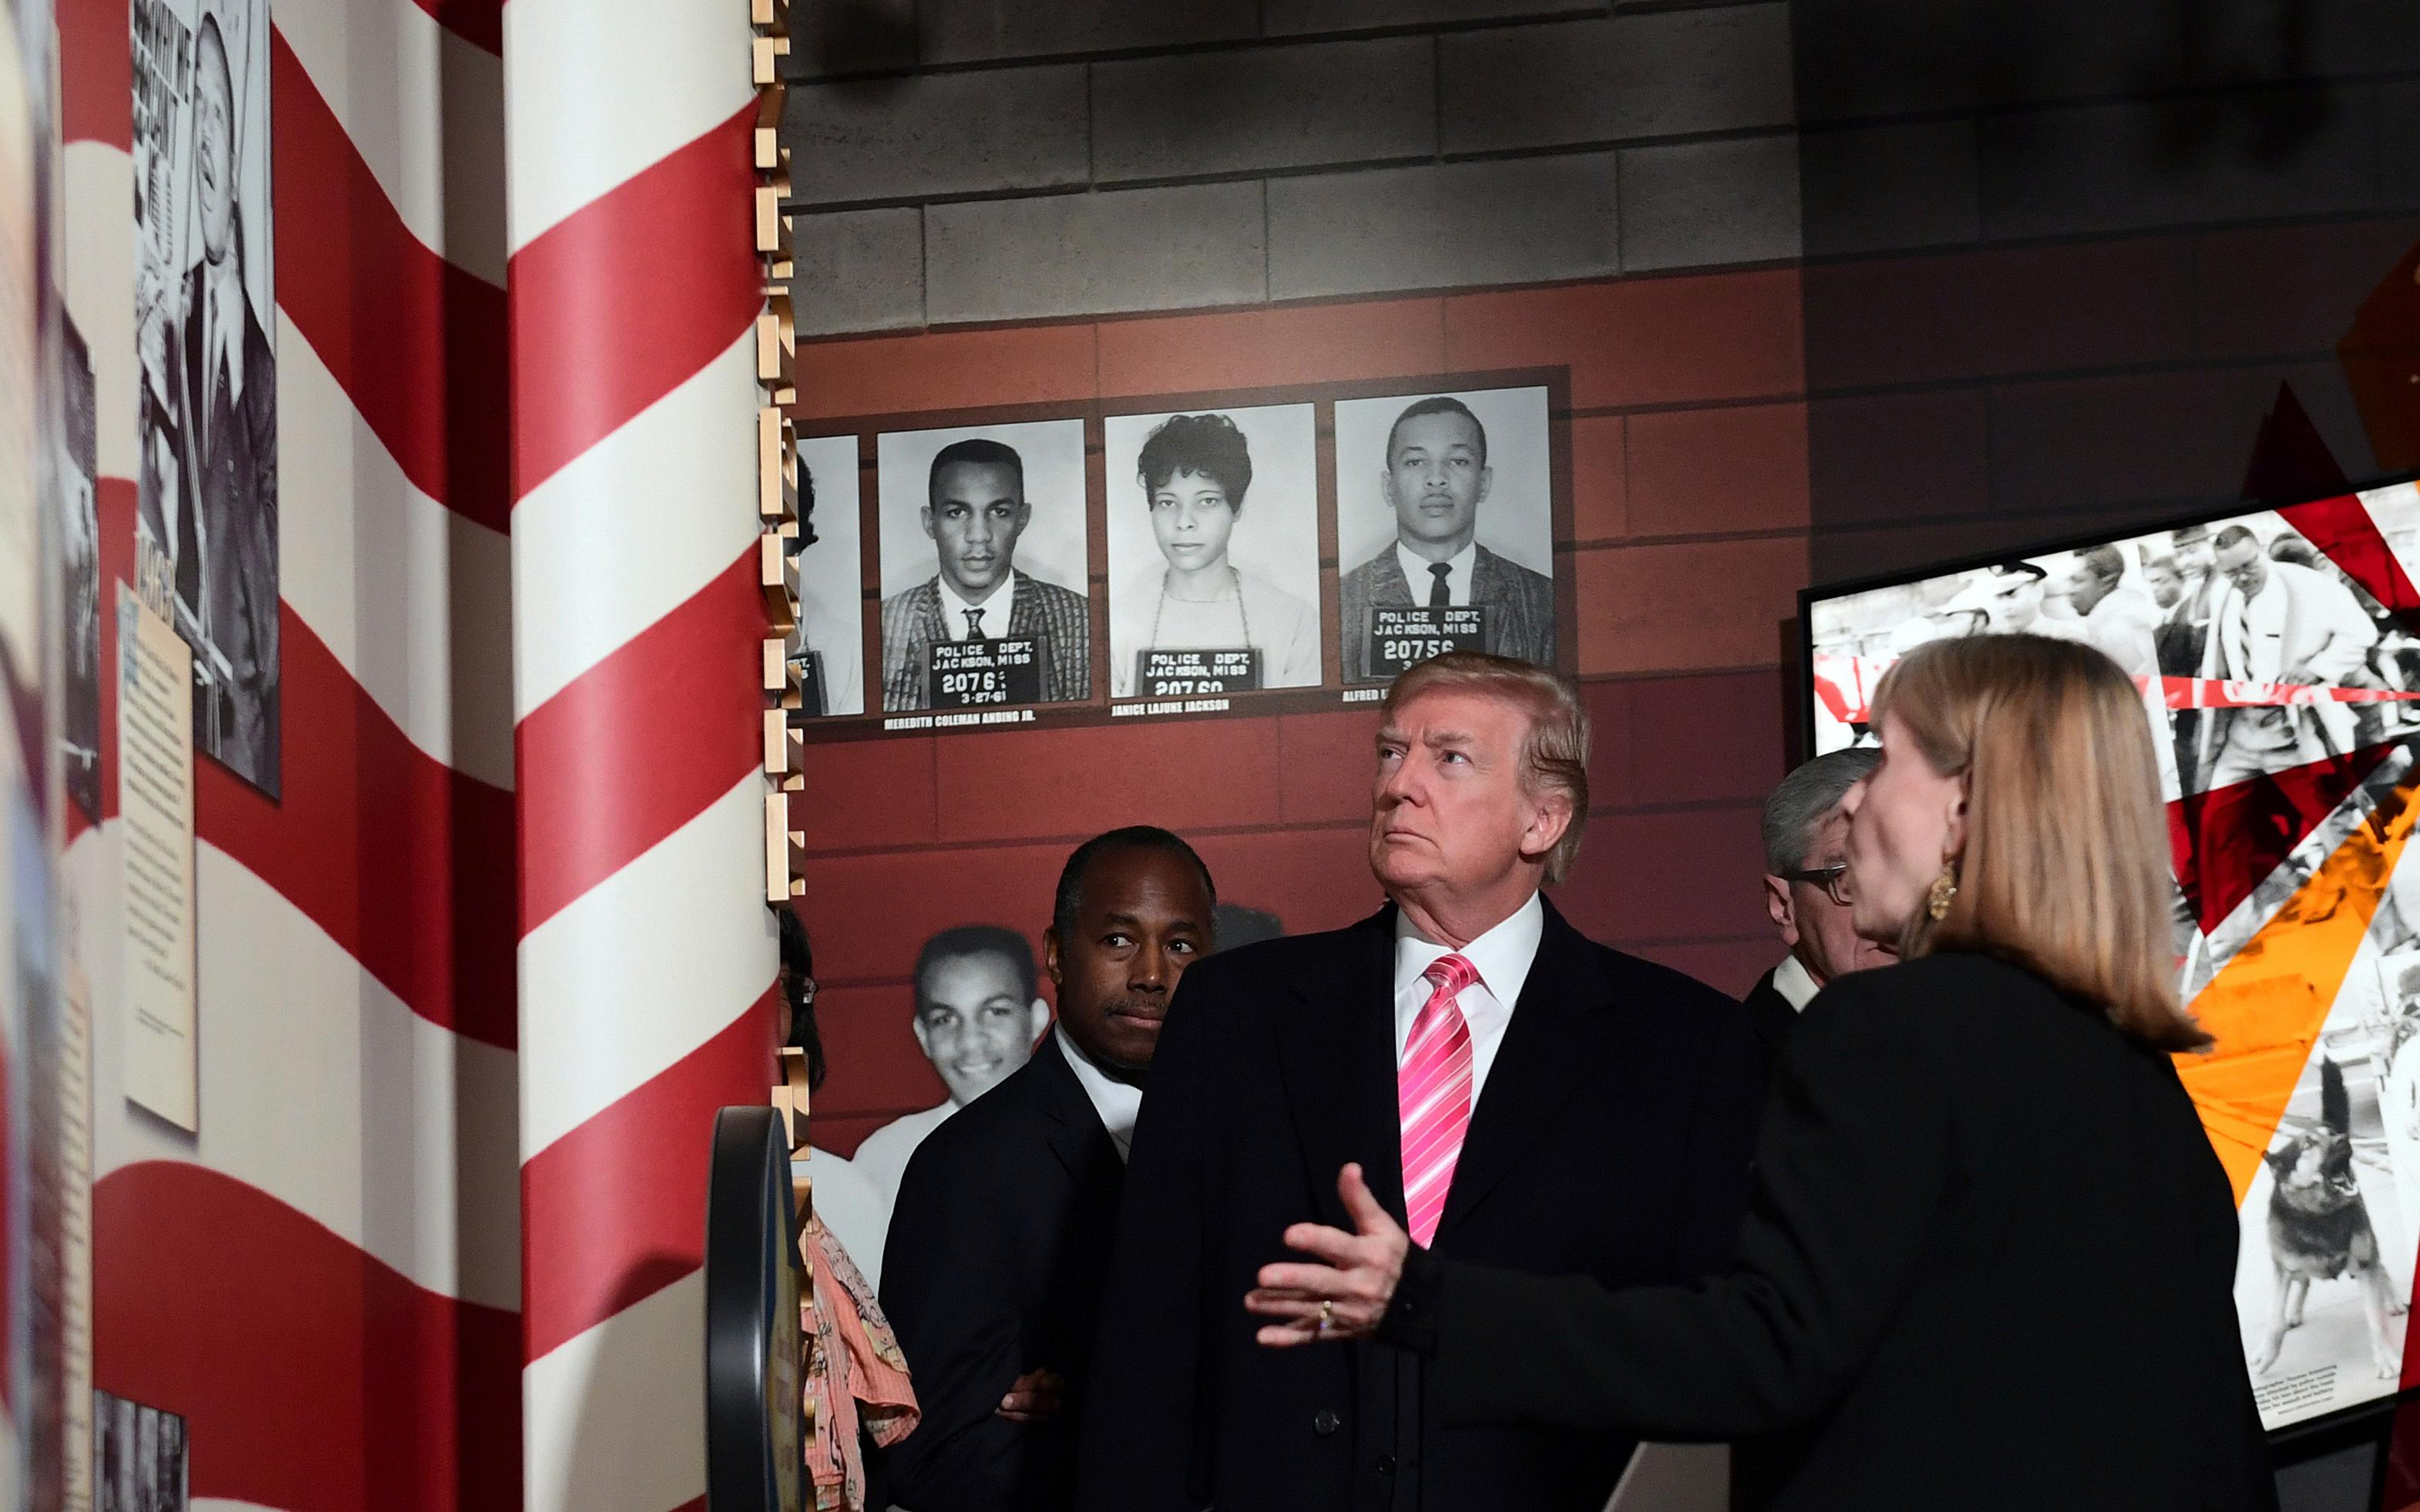 President Donald Trump, center, listens to Museum Division Director Lucy Allen, right, during a tour of the newly opened Mississippi Civil Rights Museum in Jackson, Miss., Saturday, Dec. 9, 2017. Housing and Urban Development Secretary Ben Carson, left, joins the president on the tour. (AP Photo/Susan Walsh)